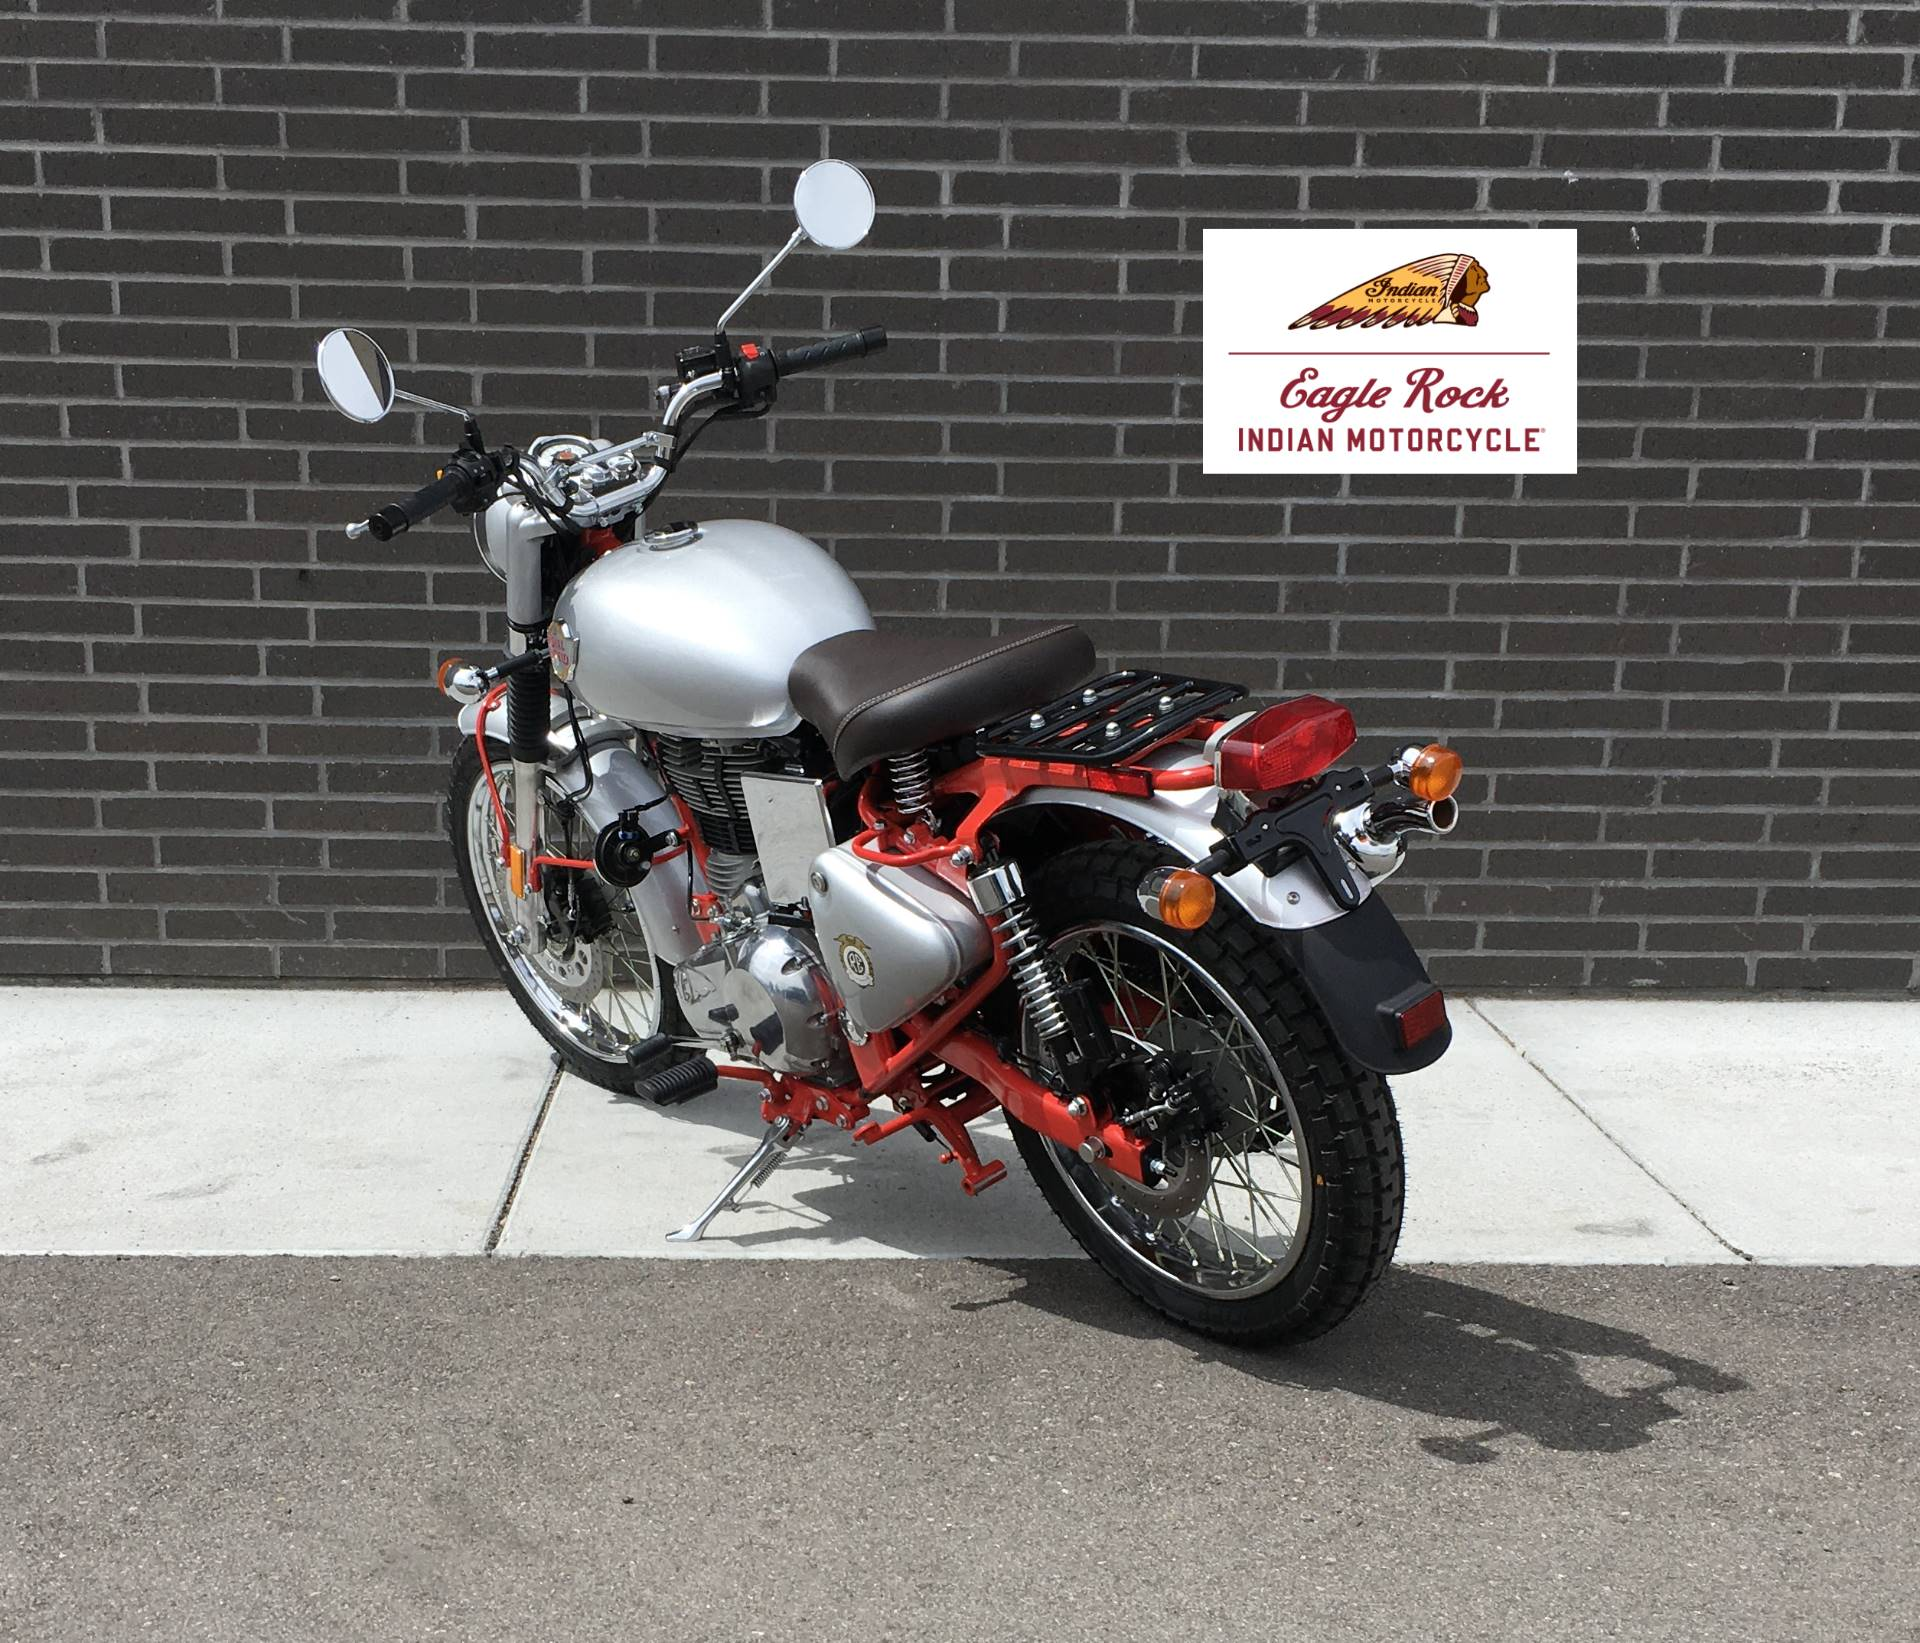 2020 Royal Enfield Bullet Trials Works Replica 500 Limited Edition in Idaho Falls, Idaho - Photo 2